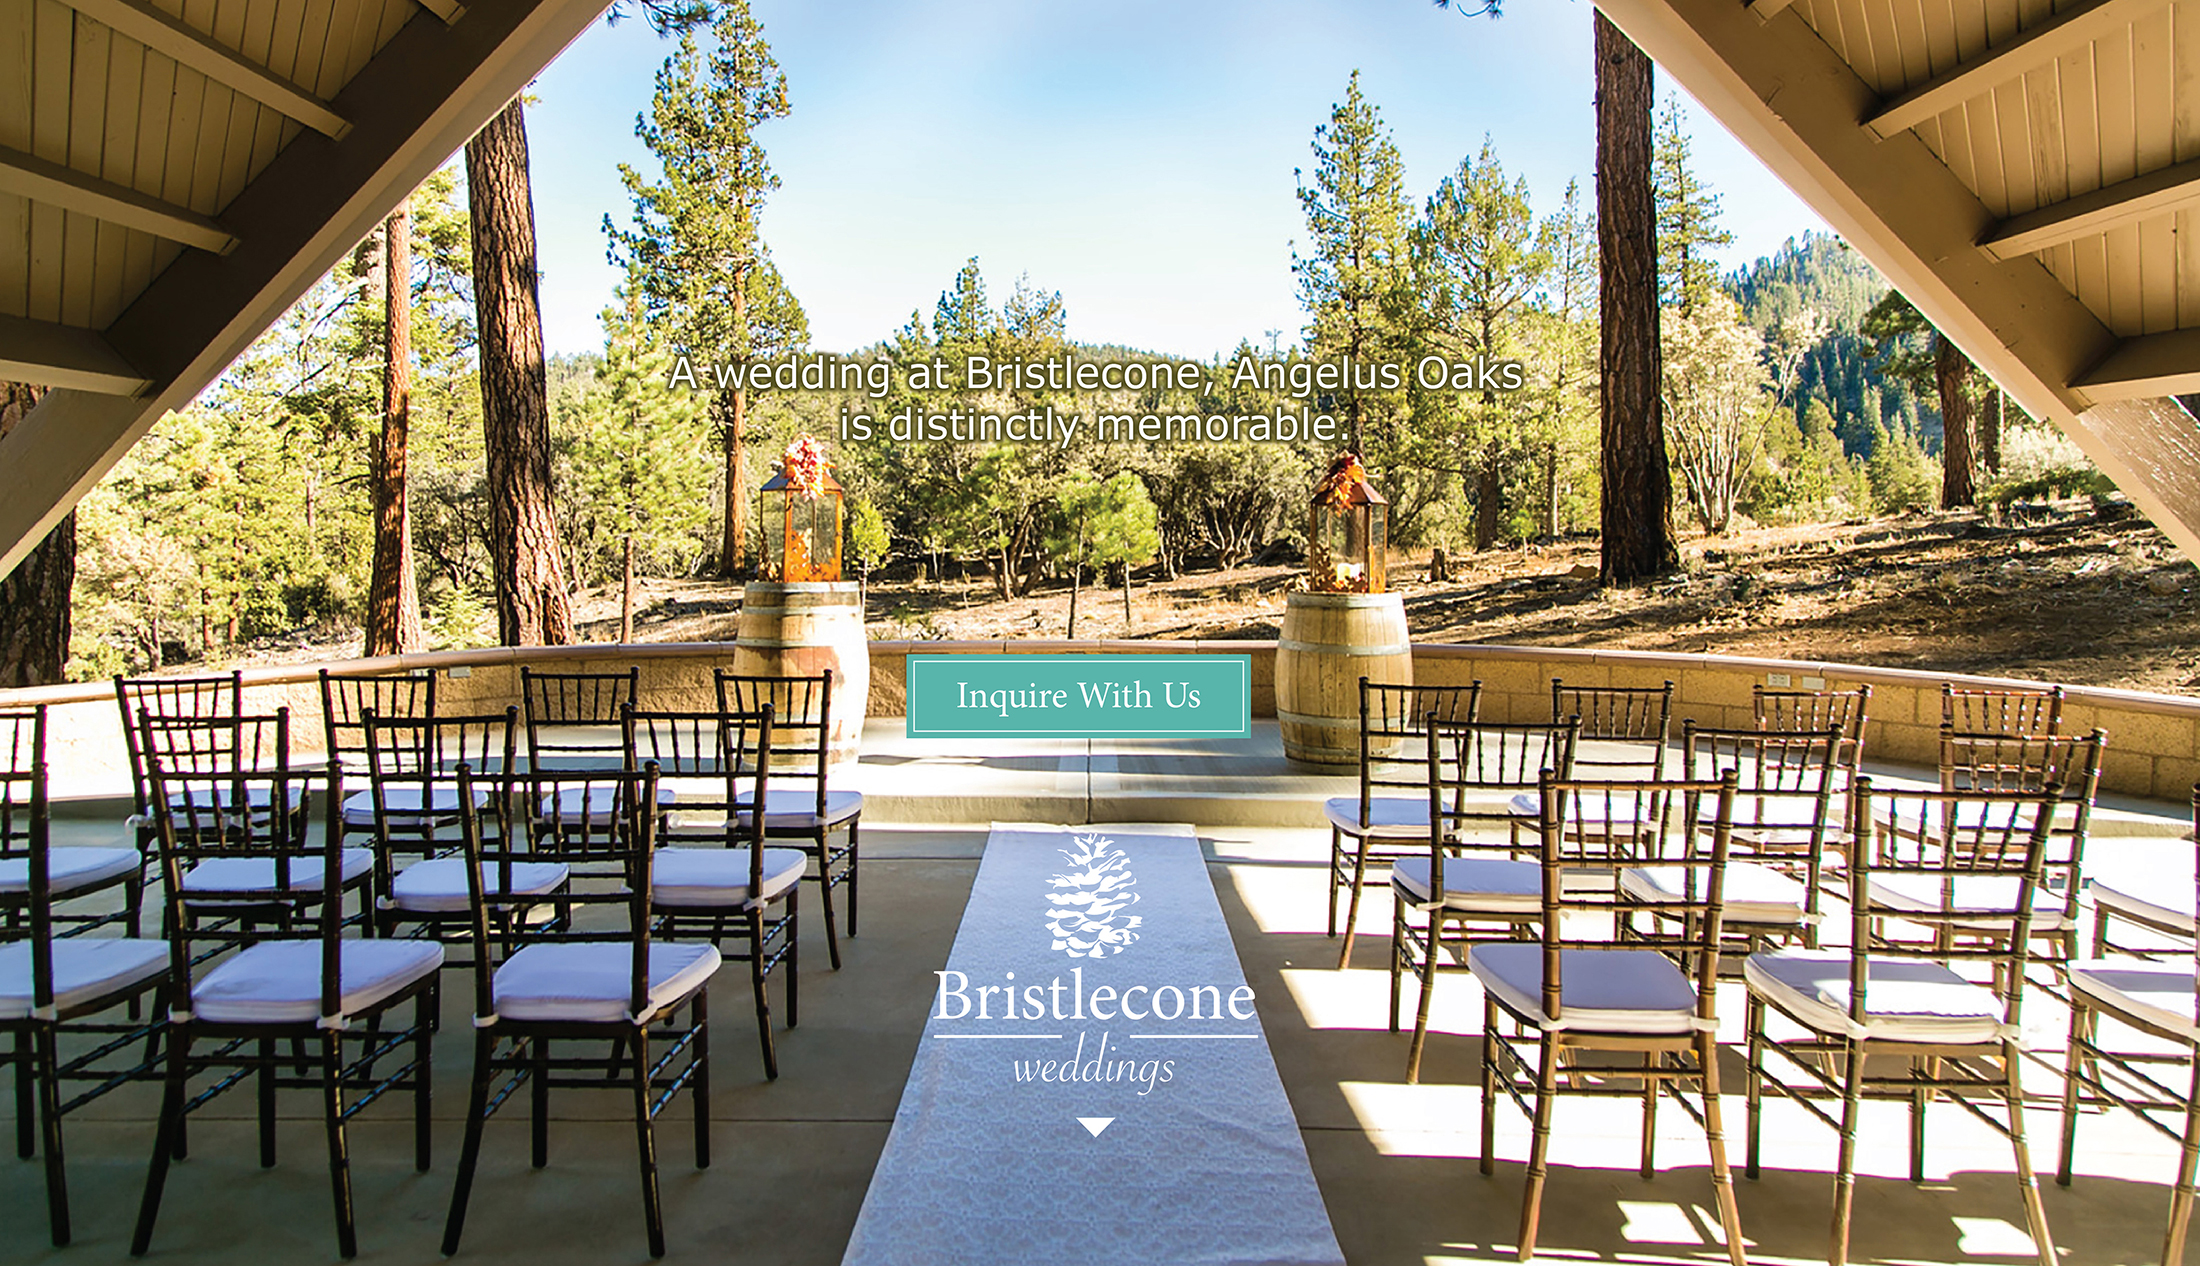 Weddings At Bristle Cone